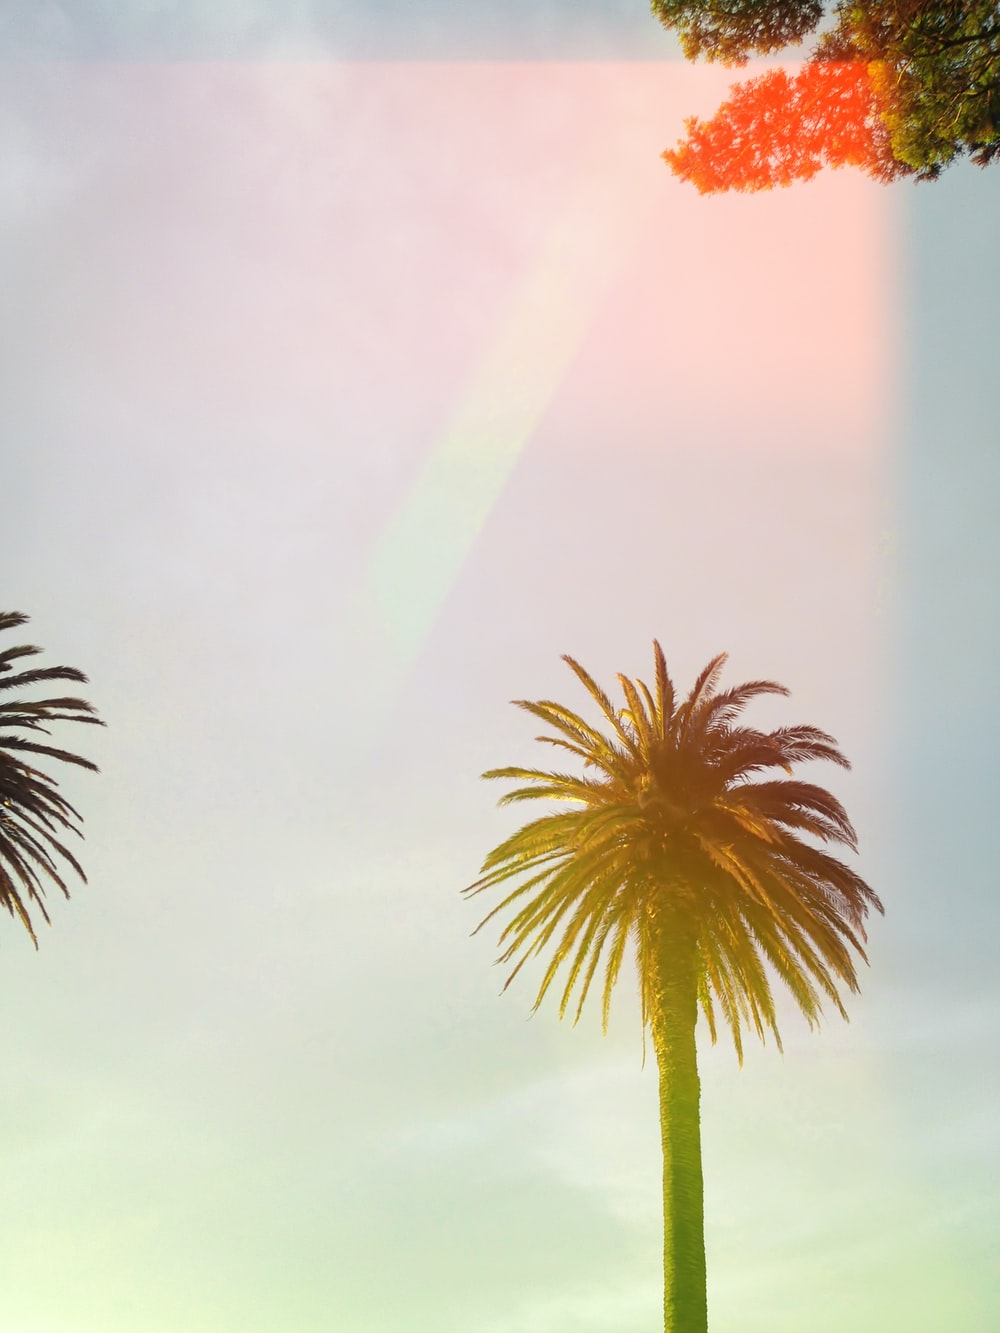 green palm tree under cloudy sky